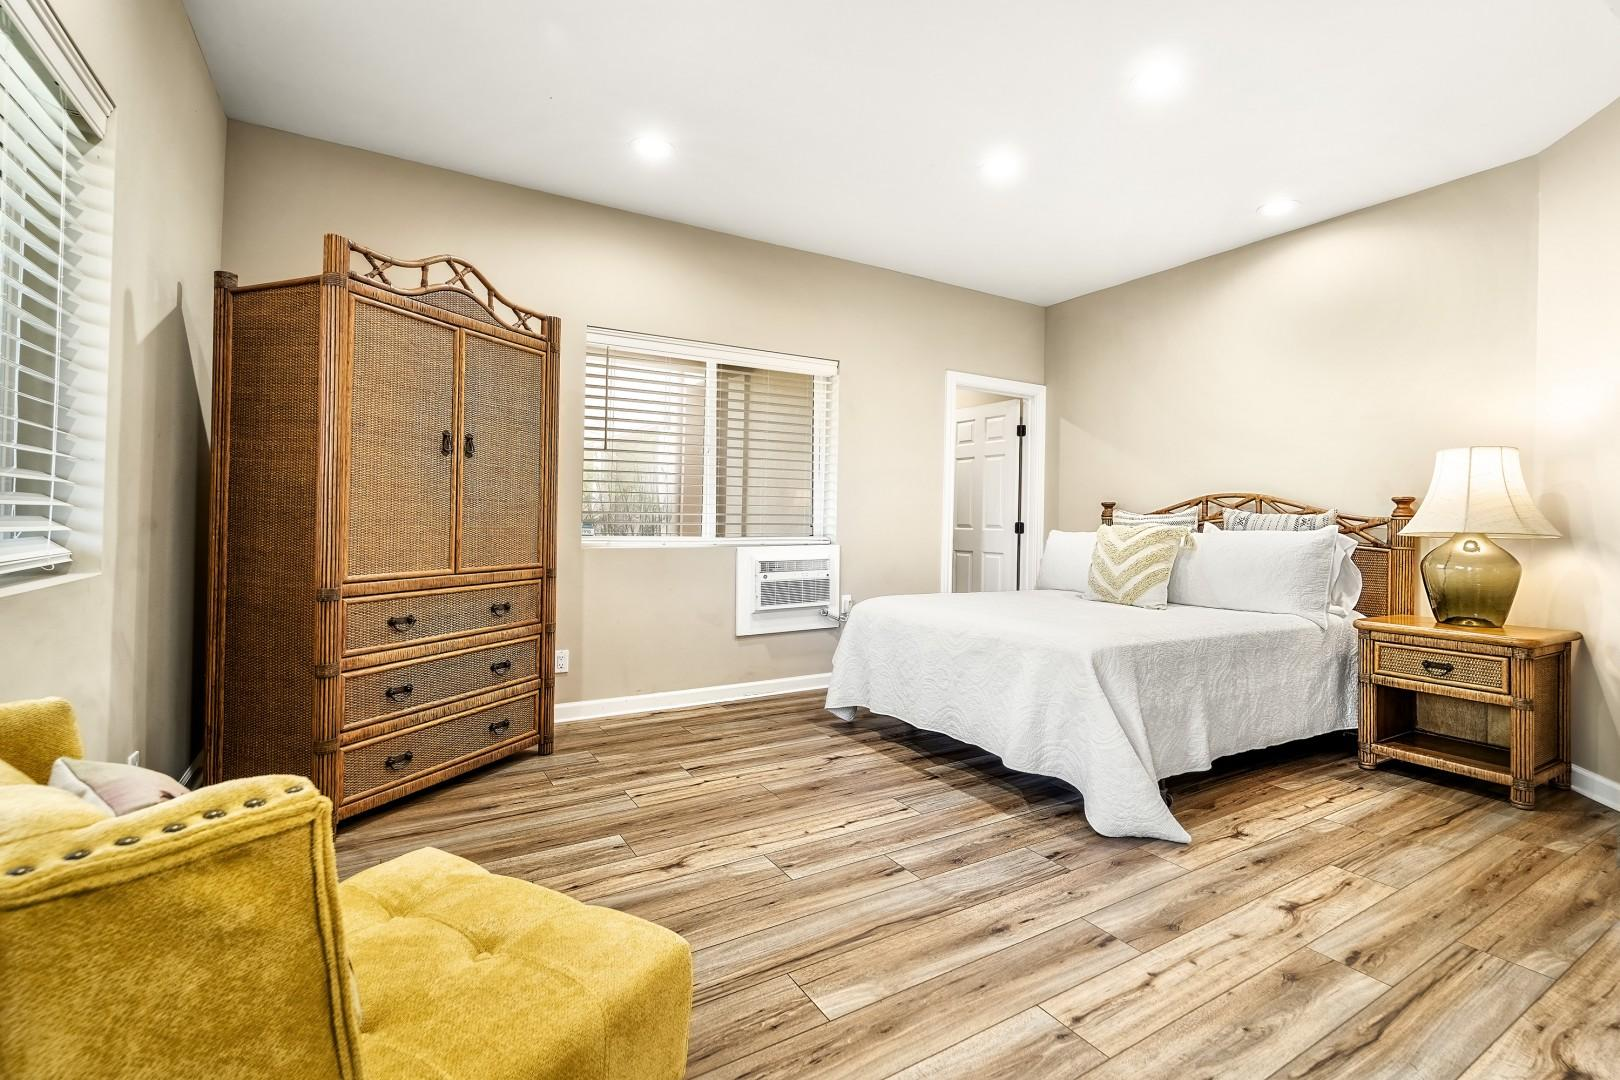 Guest bedroom Equipped with Queen bed, A/C, walk in closet, and Lanai access